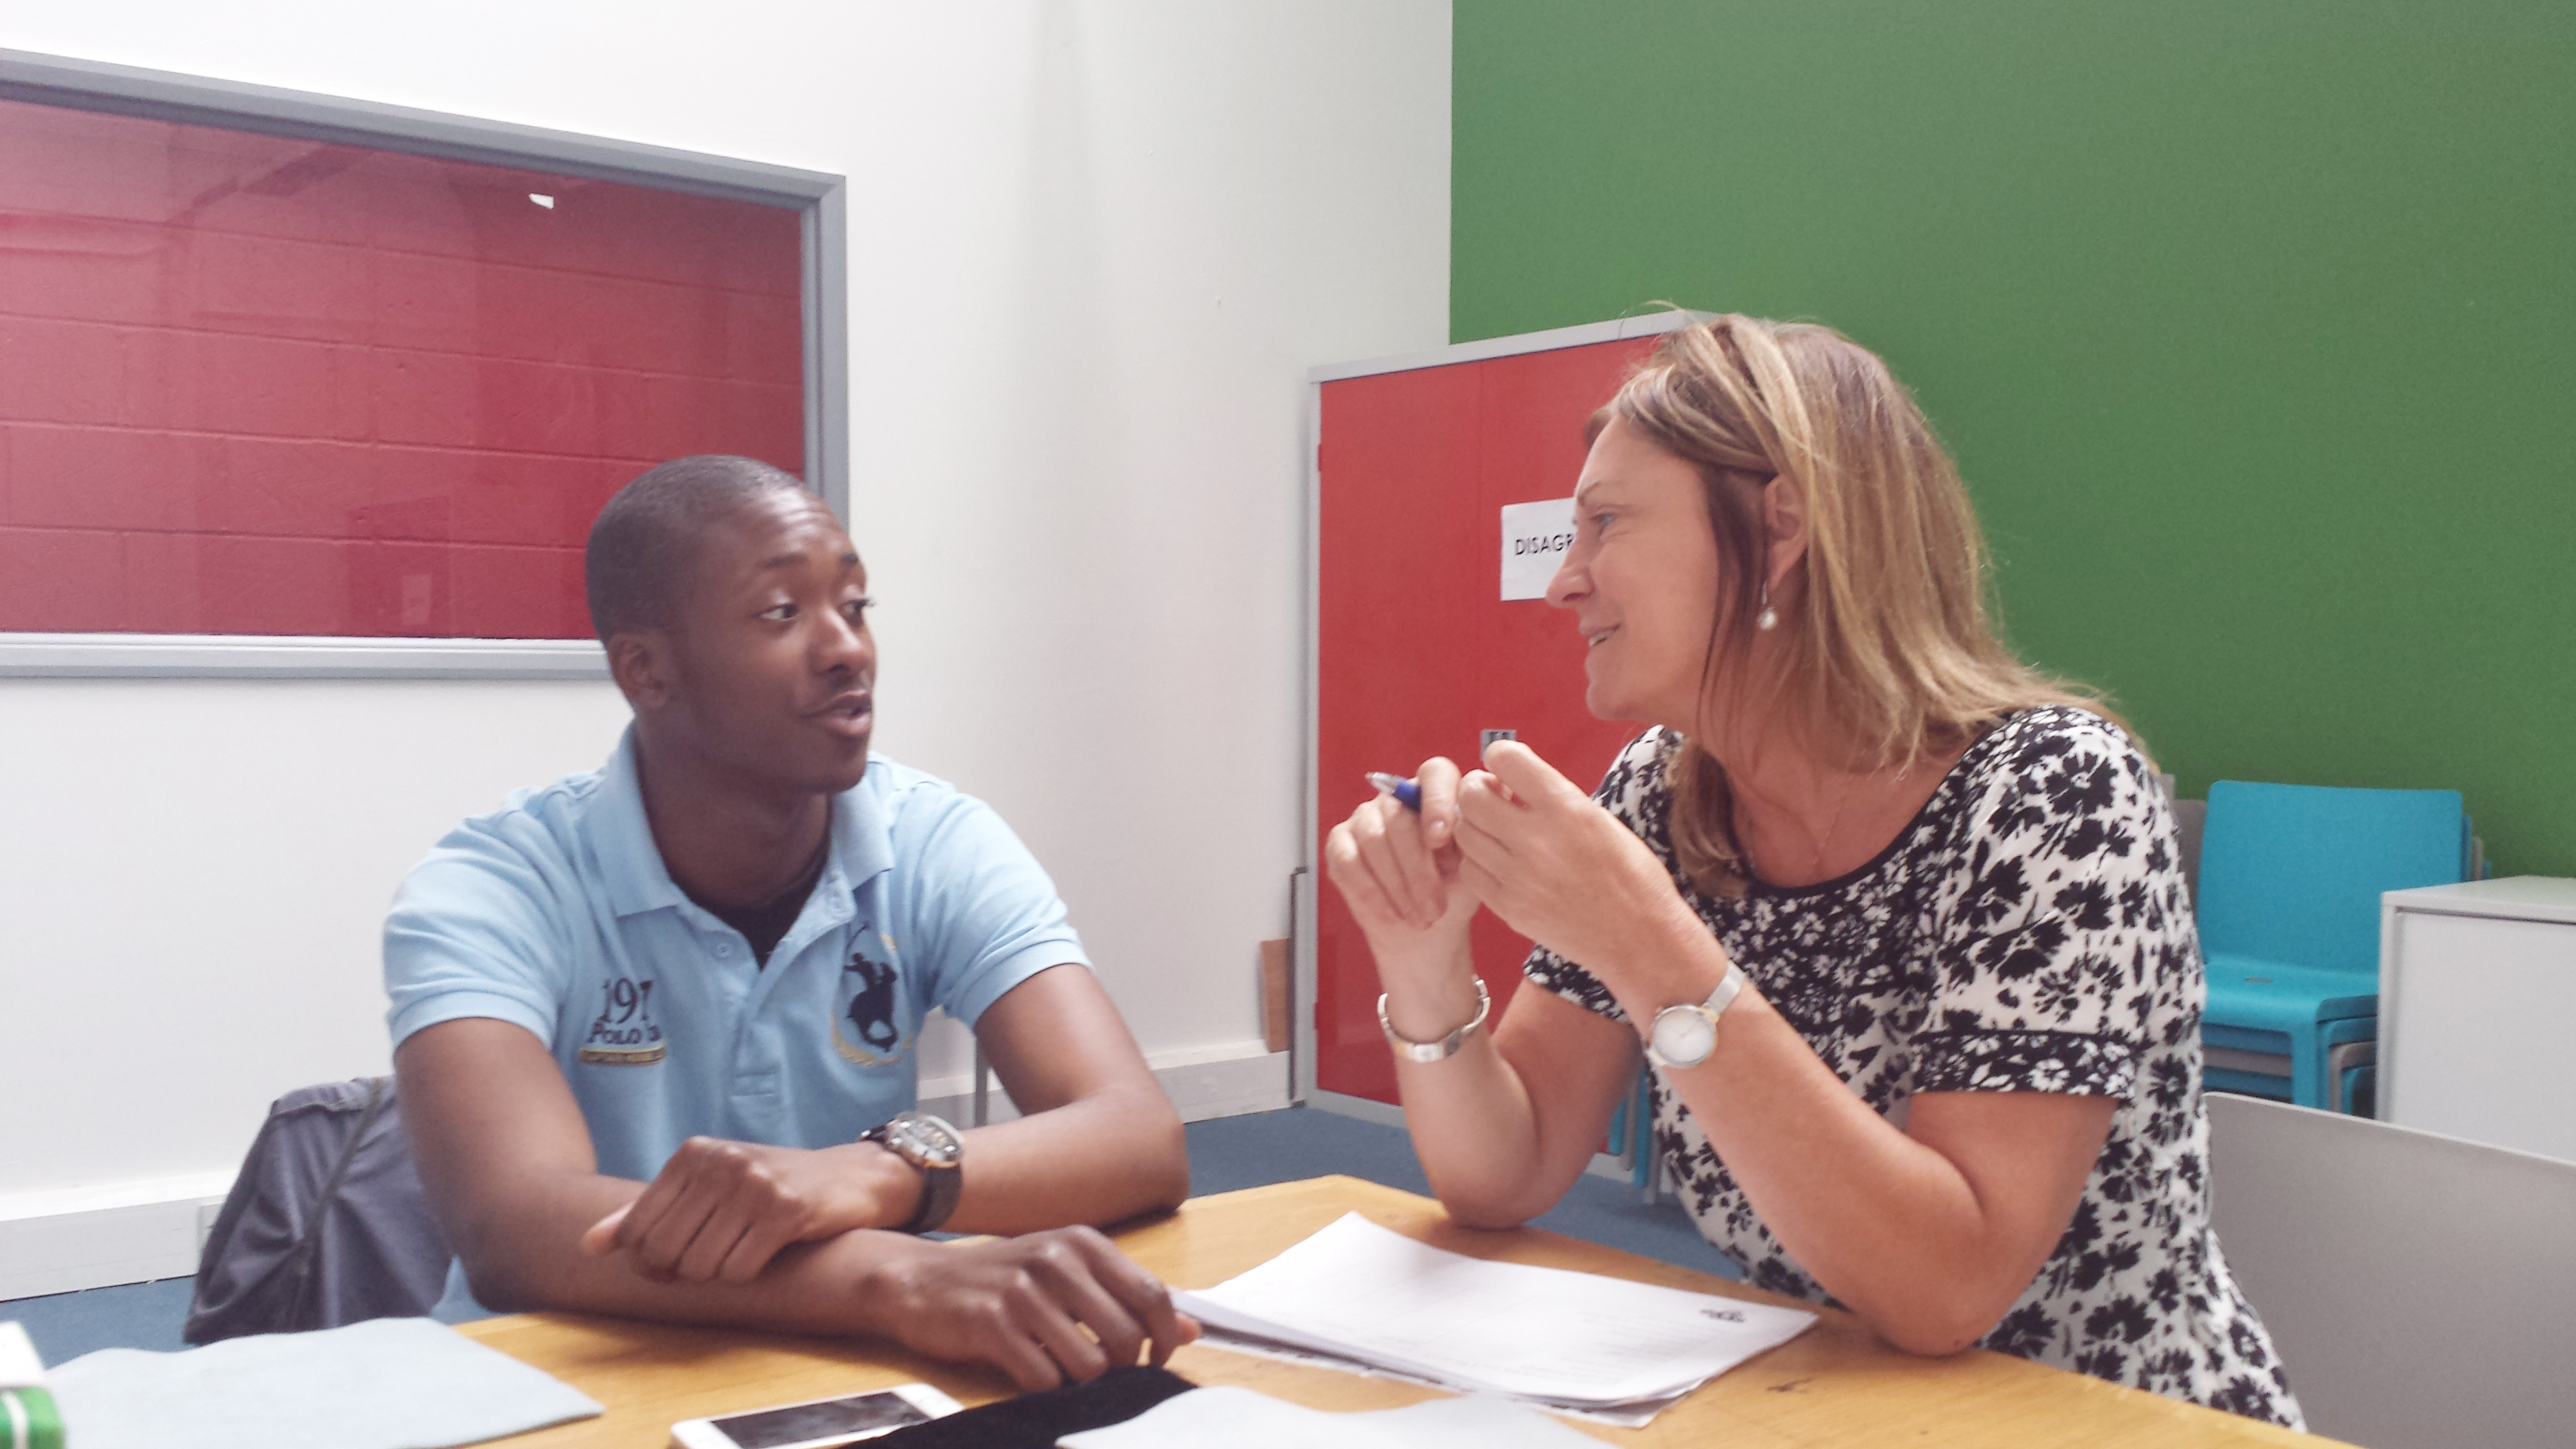 Mentoring at the Prince's Trust